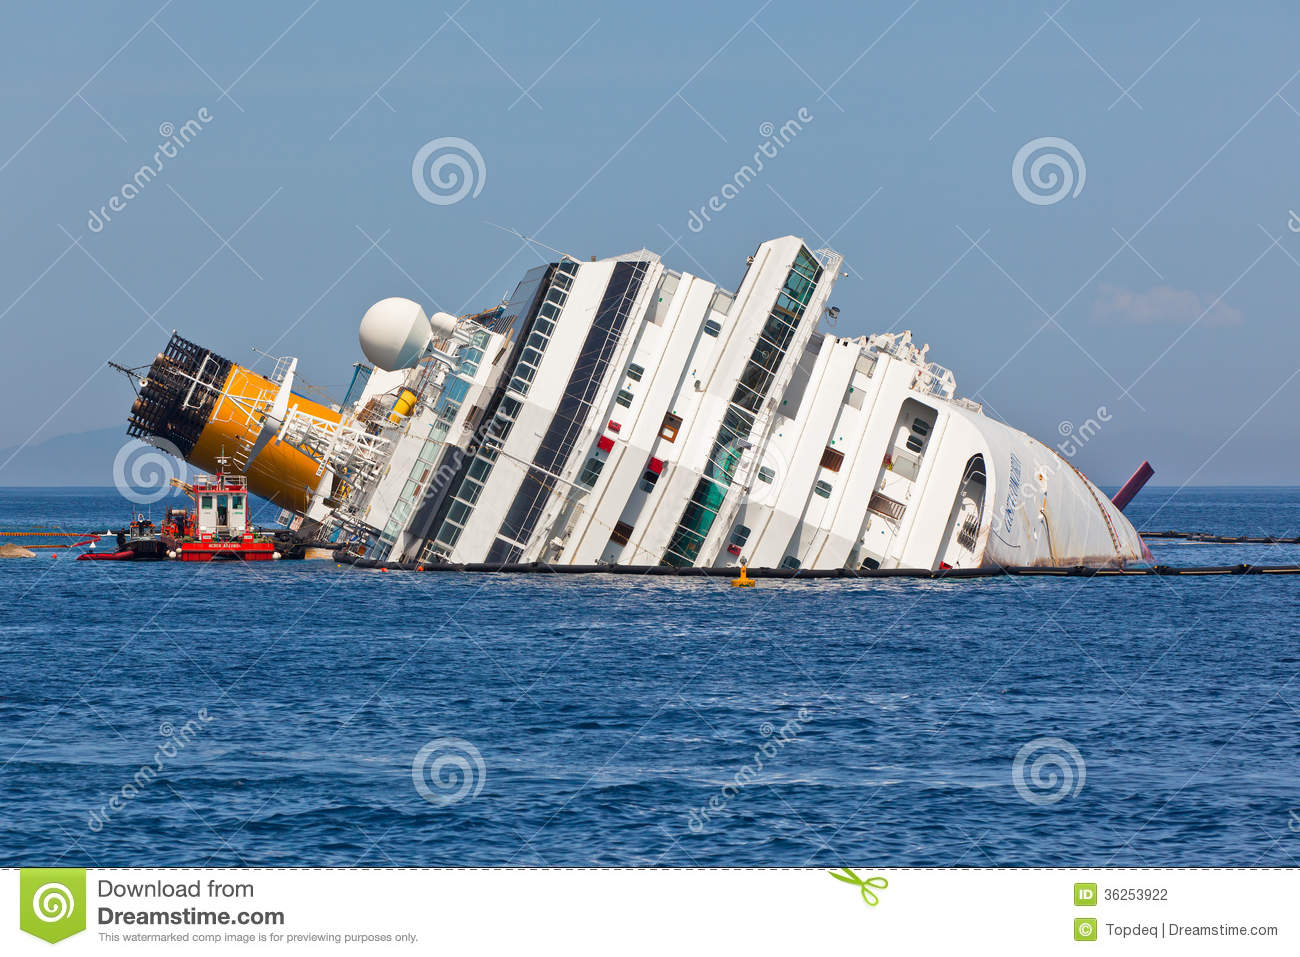 costa concordia cruise ship after shipwreck editorial photography - Cruise Ship Photographer